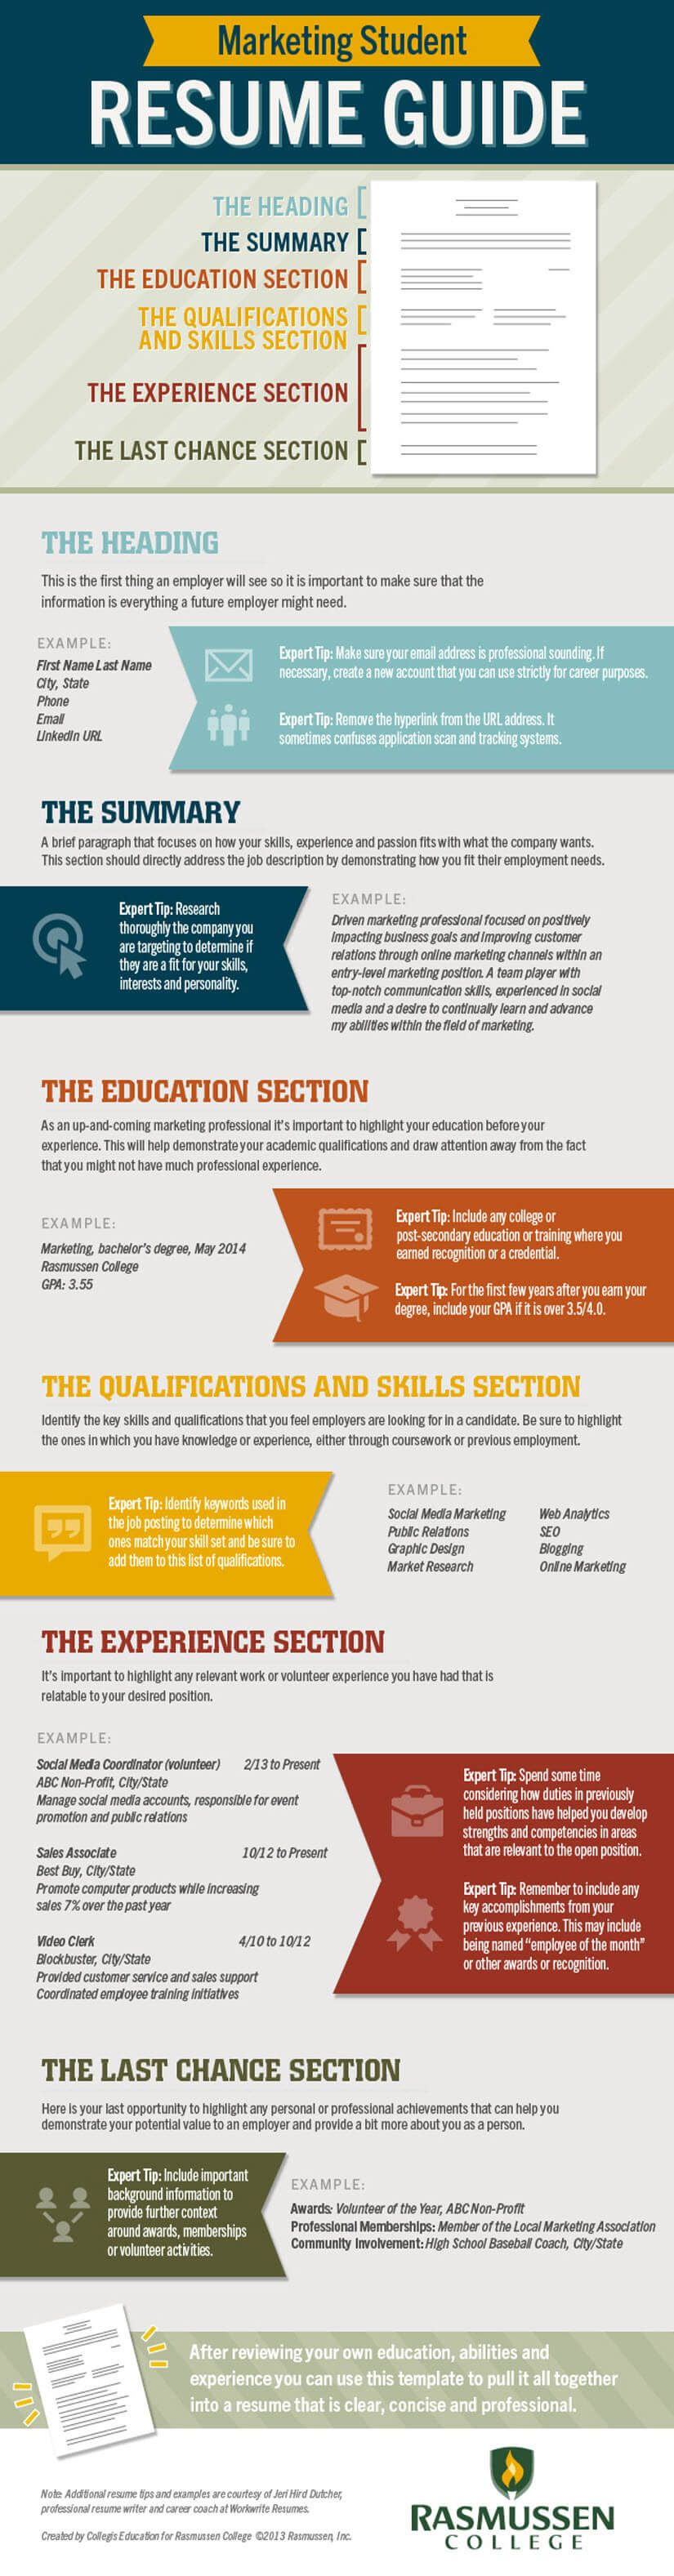 Resume Writing Guide For Marketing Students